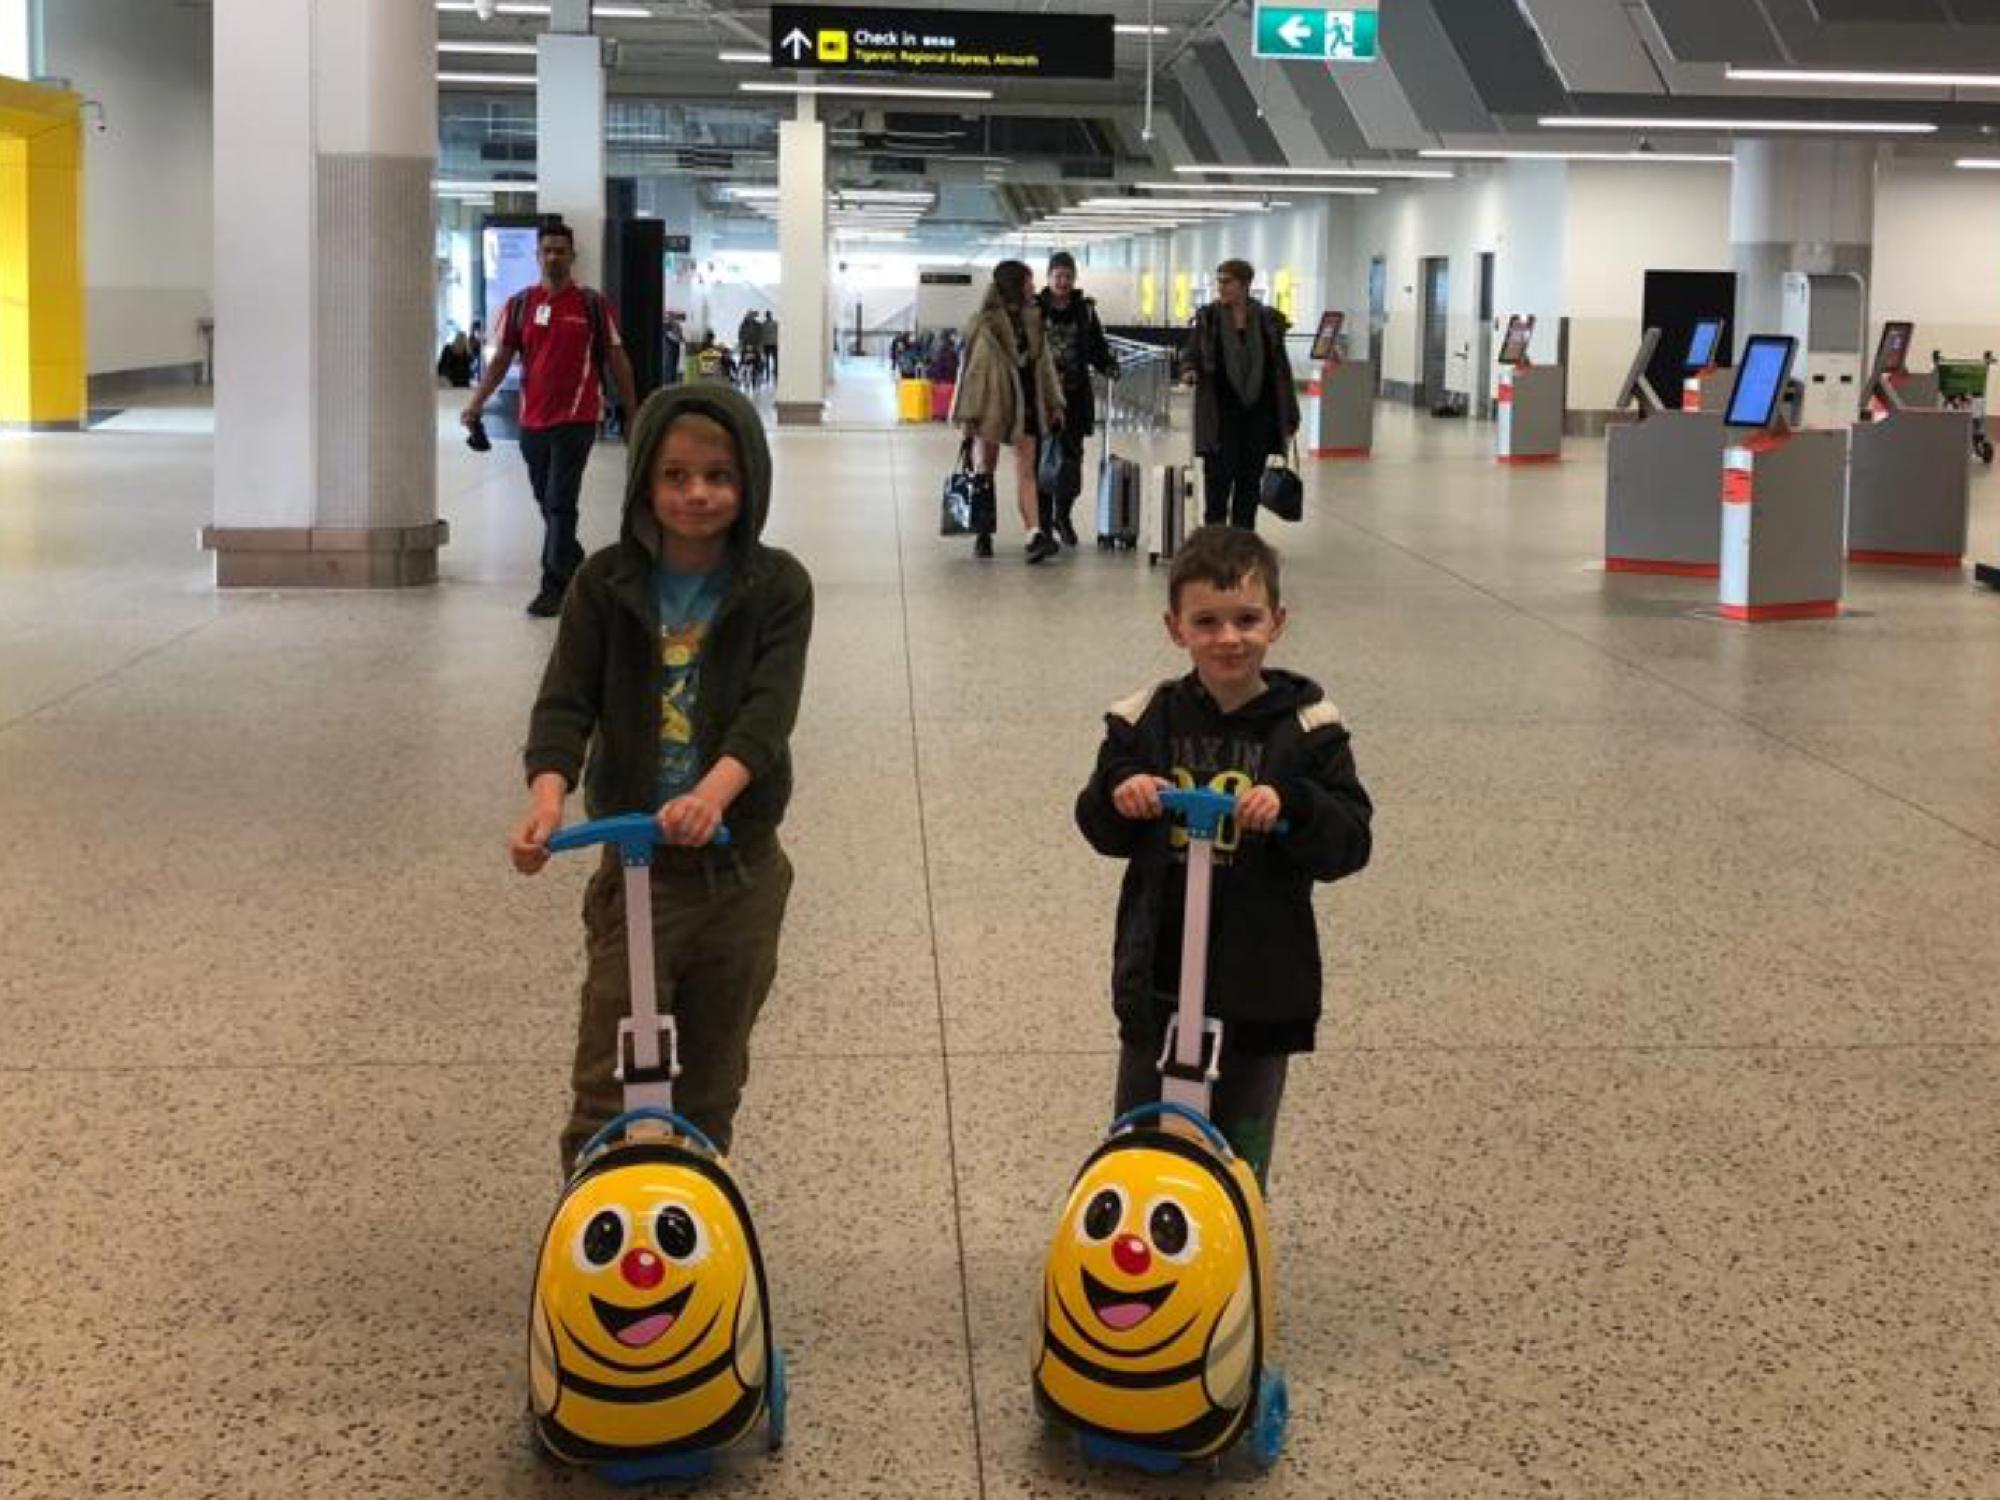 Boys on scooters in airport